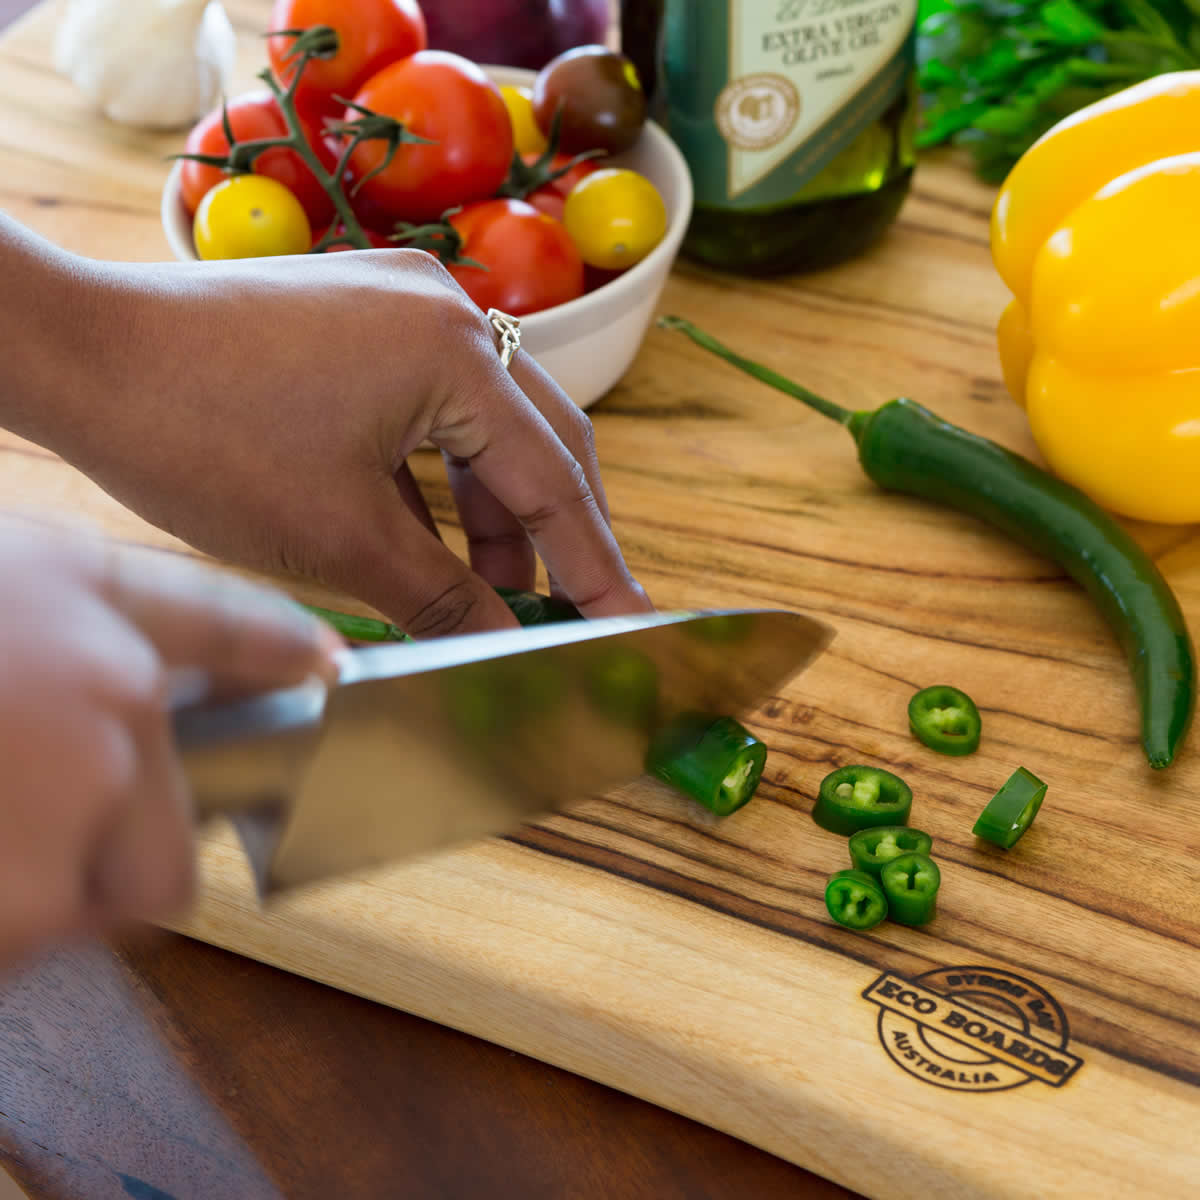 Chopping board vegetables